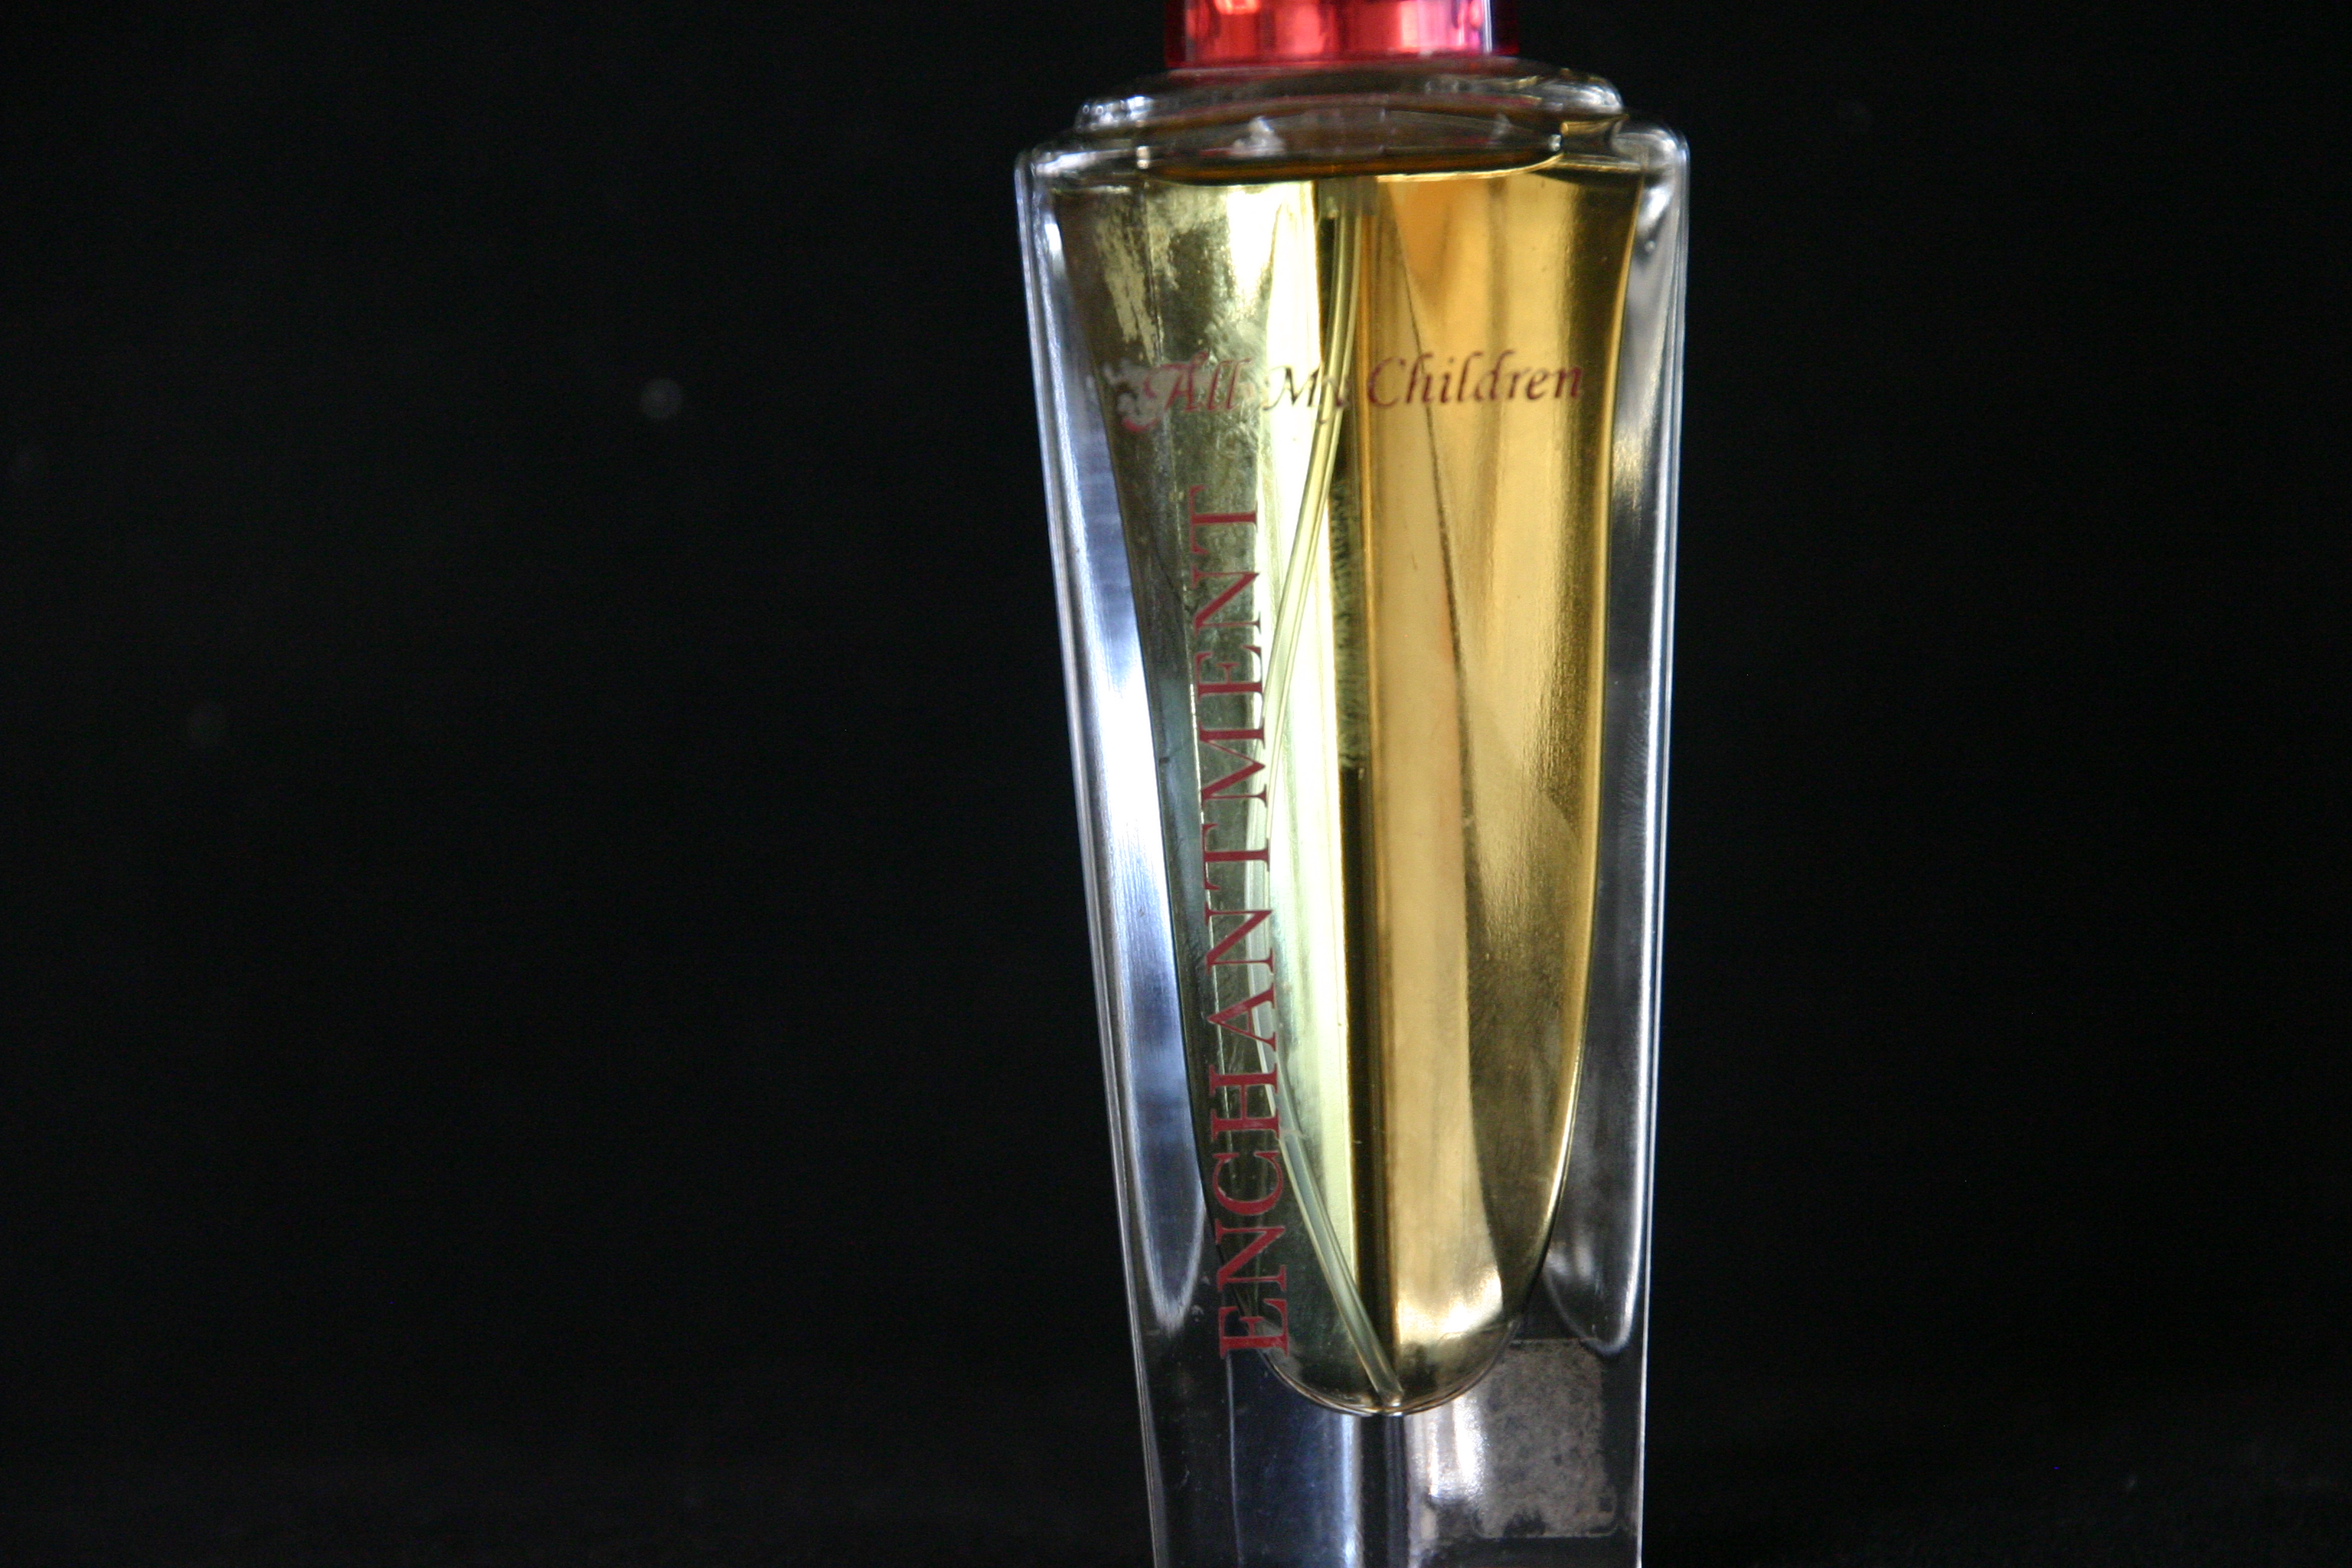 comparison between 2 perfume ads essay Definition, usage and a list of comparison examples in common speech and literature comparison is a rhetorical or literary device in which a writer compares or contrasts two people, places, things, or ideas.